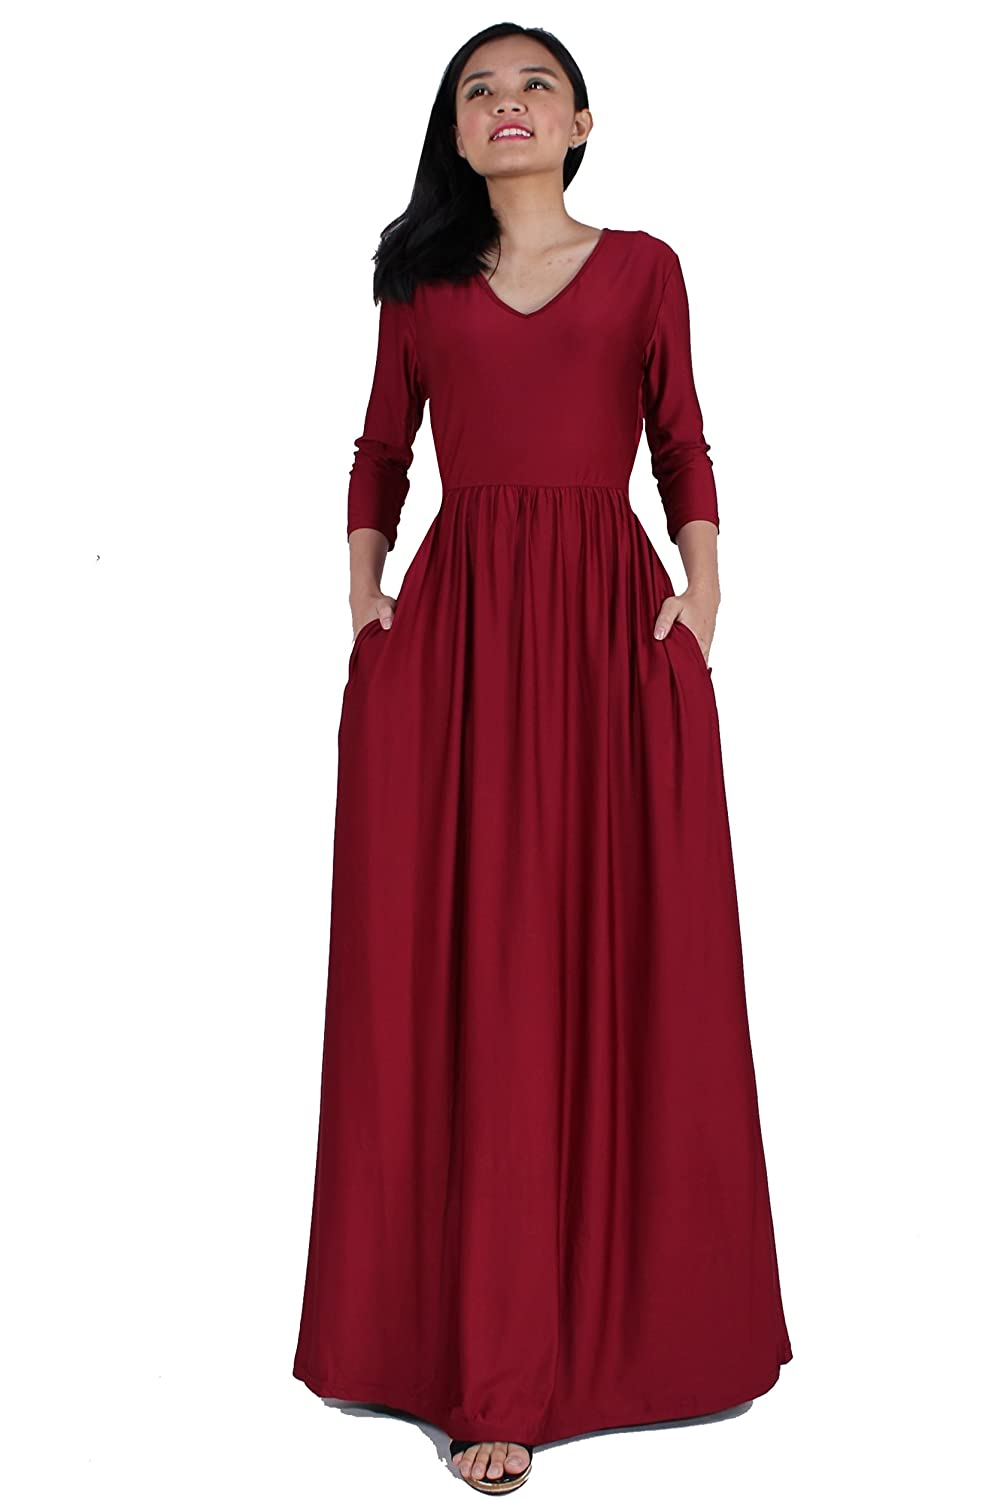 19ad636ec Women Maxi Dress Plus Size Formal Beach Wedding Guest Party Bridesmaid  Evening Ball Gown Gala at Amazon Women's Clothing store: